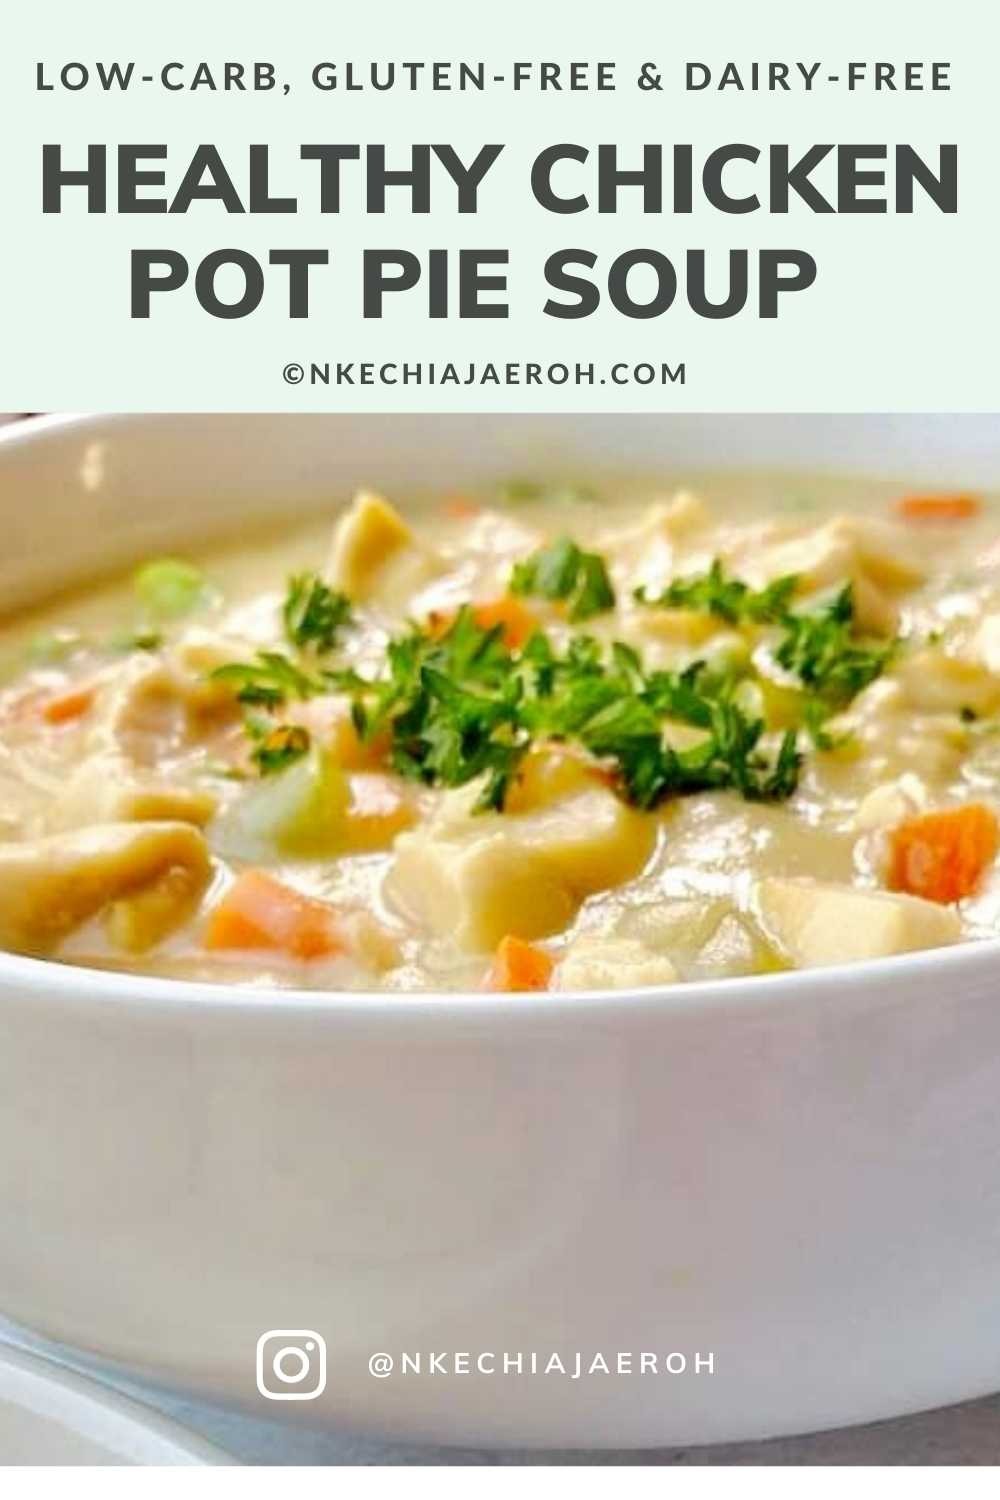 A perfect healthy chicken pot pie soup that is creamy, cozy, comforting, hearty, and very satisfying; this soup is gluten-free, dairy-free, nut-free, paleo-friendly, low-carb, and whole30-friendly. This easy-to-make heart-healthy pot pie soup will keep you satisfied and wanting more at the same time! #Chickenrecipe #chickenpotpiesoup #Glutenfreerecipe #Dairyfreerecipe #Glutenfreechickenpotpiesoup #cauliflowerrecipe